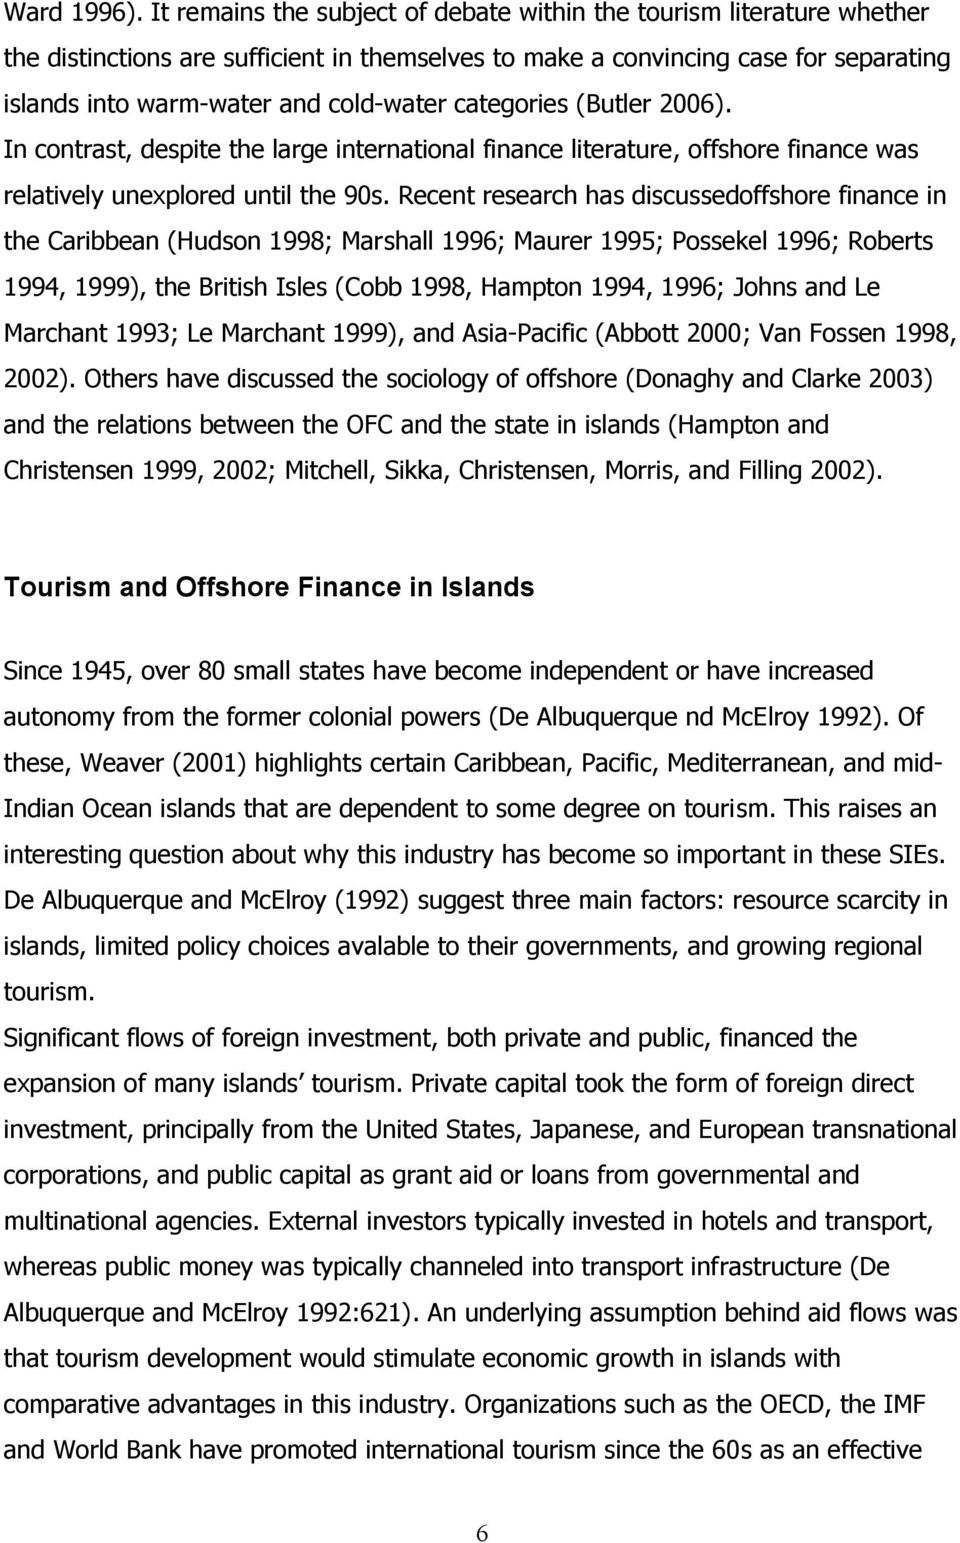 categories (Butler 2006). In contrast, despite the large international finance literature, offshore finance was relatively unexplored until the 90s.